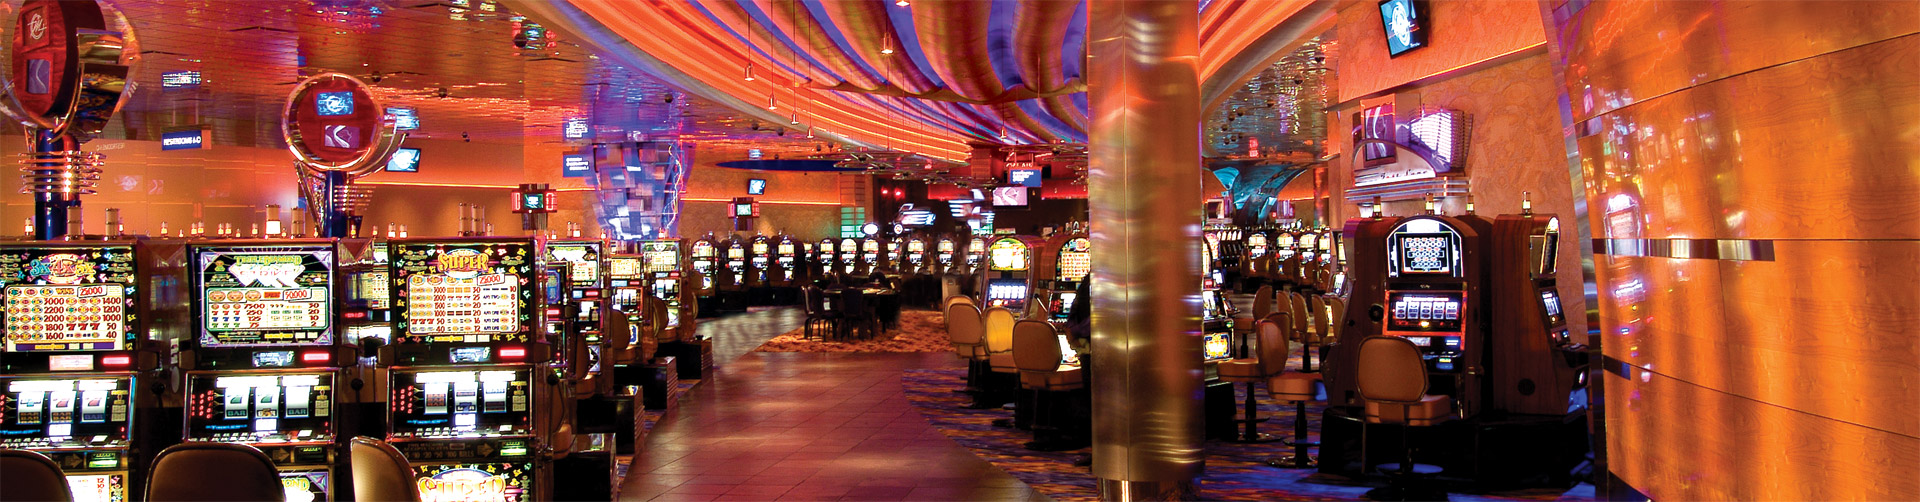 Best slot machines to play at motor city casino puerto rico gambling hotels